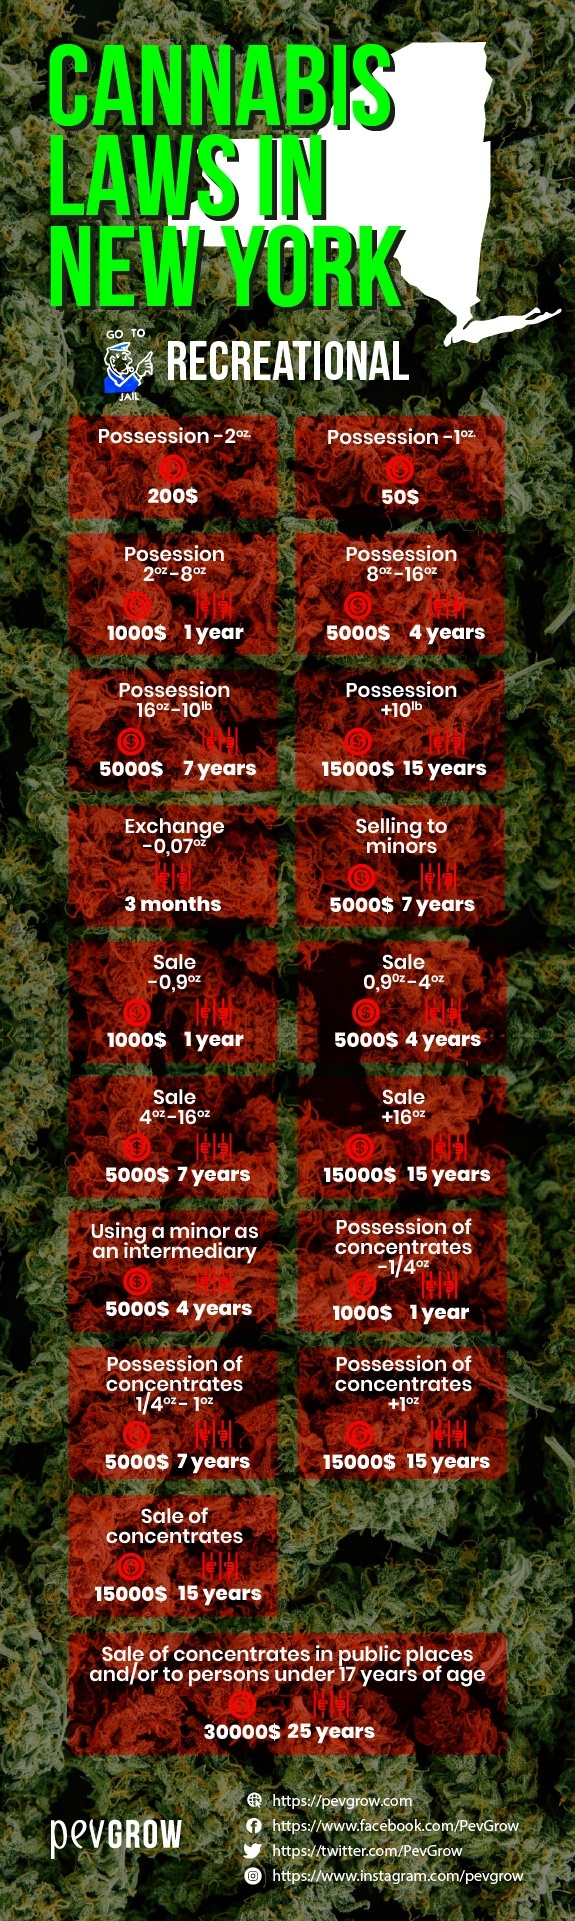 Cannabis laws in New York -sanctions and permitted uses-.